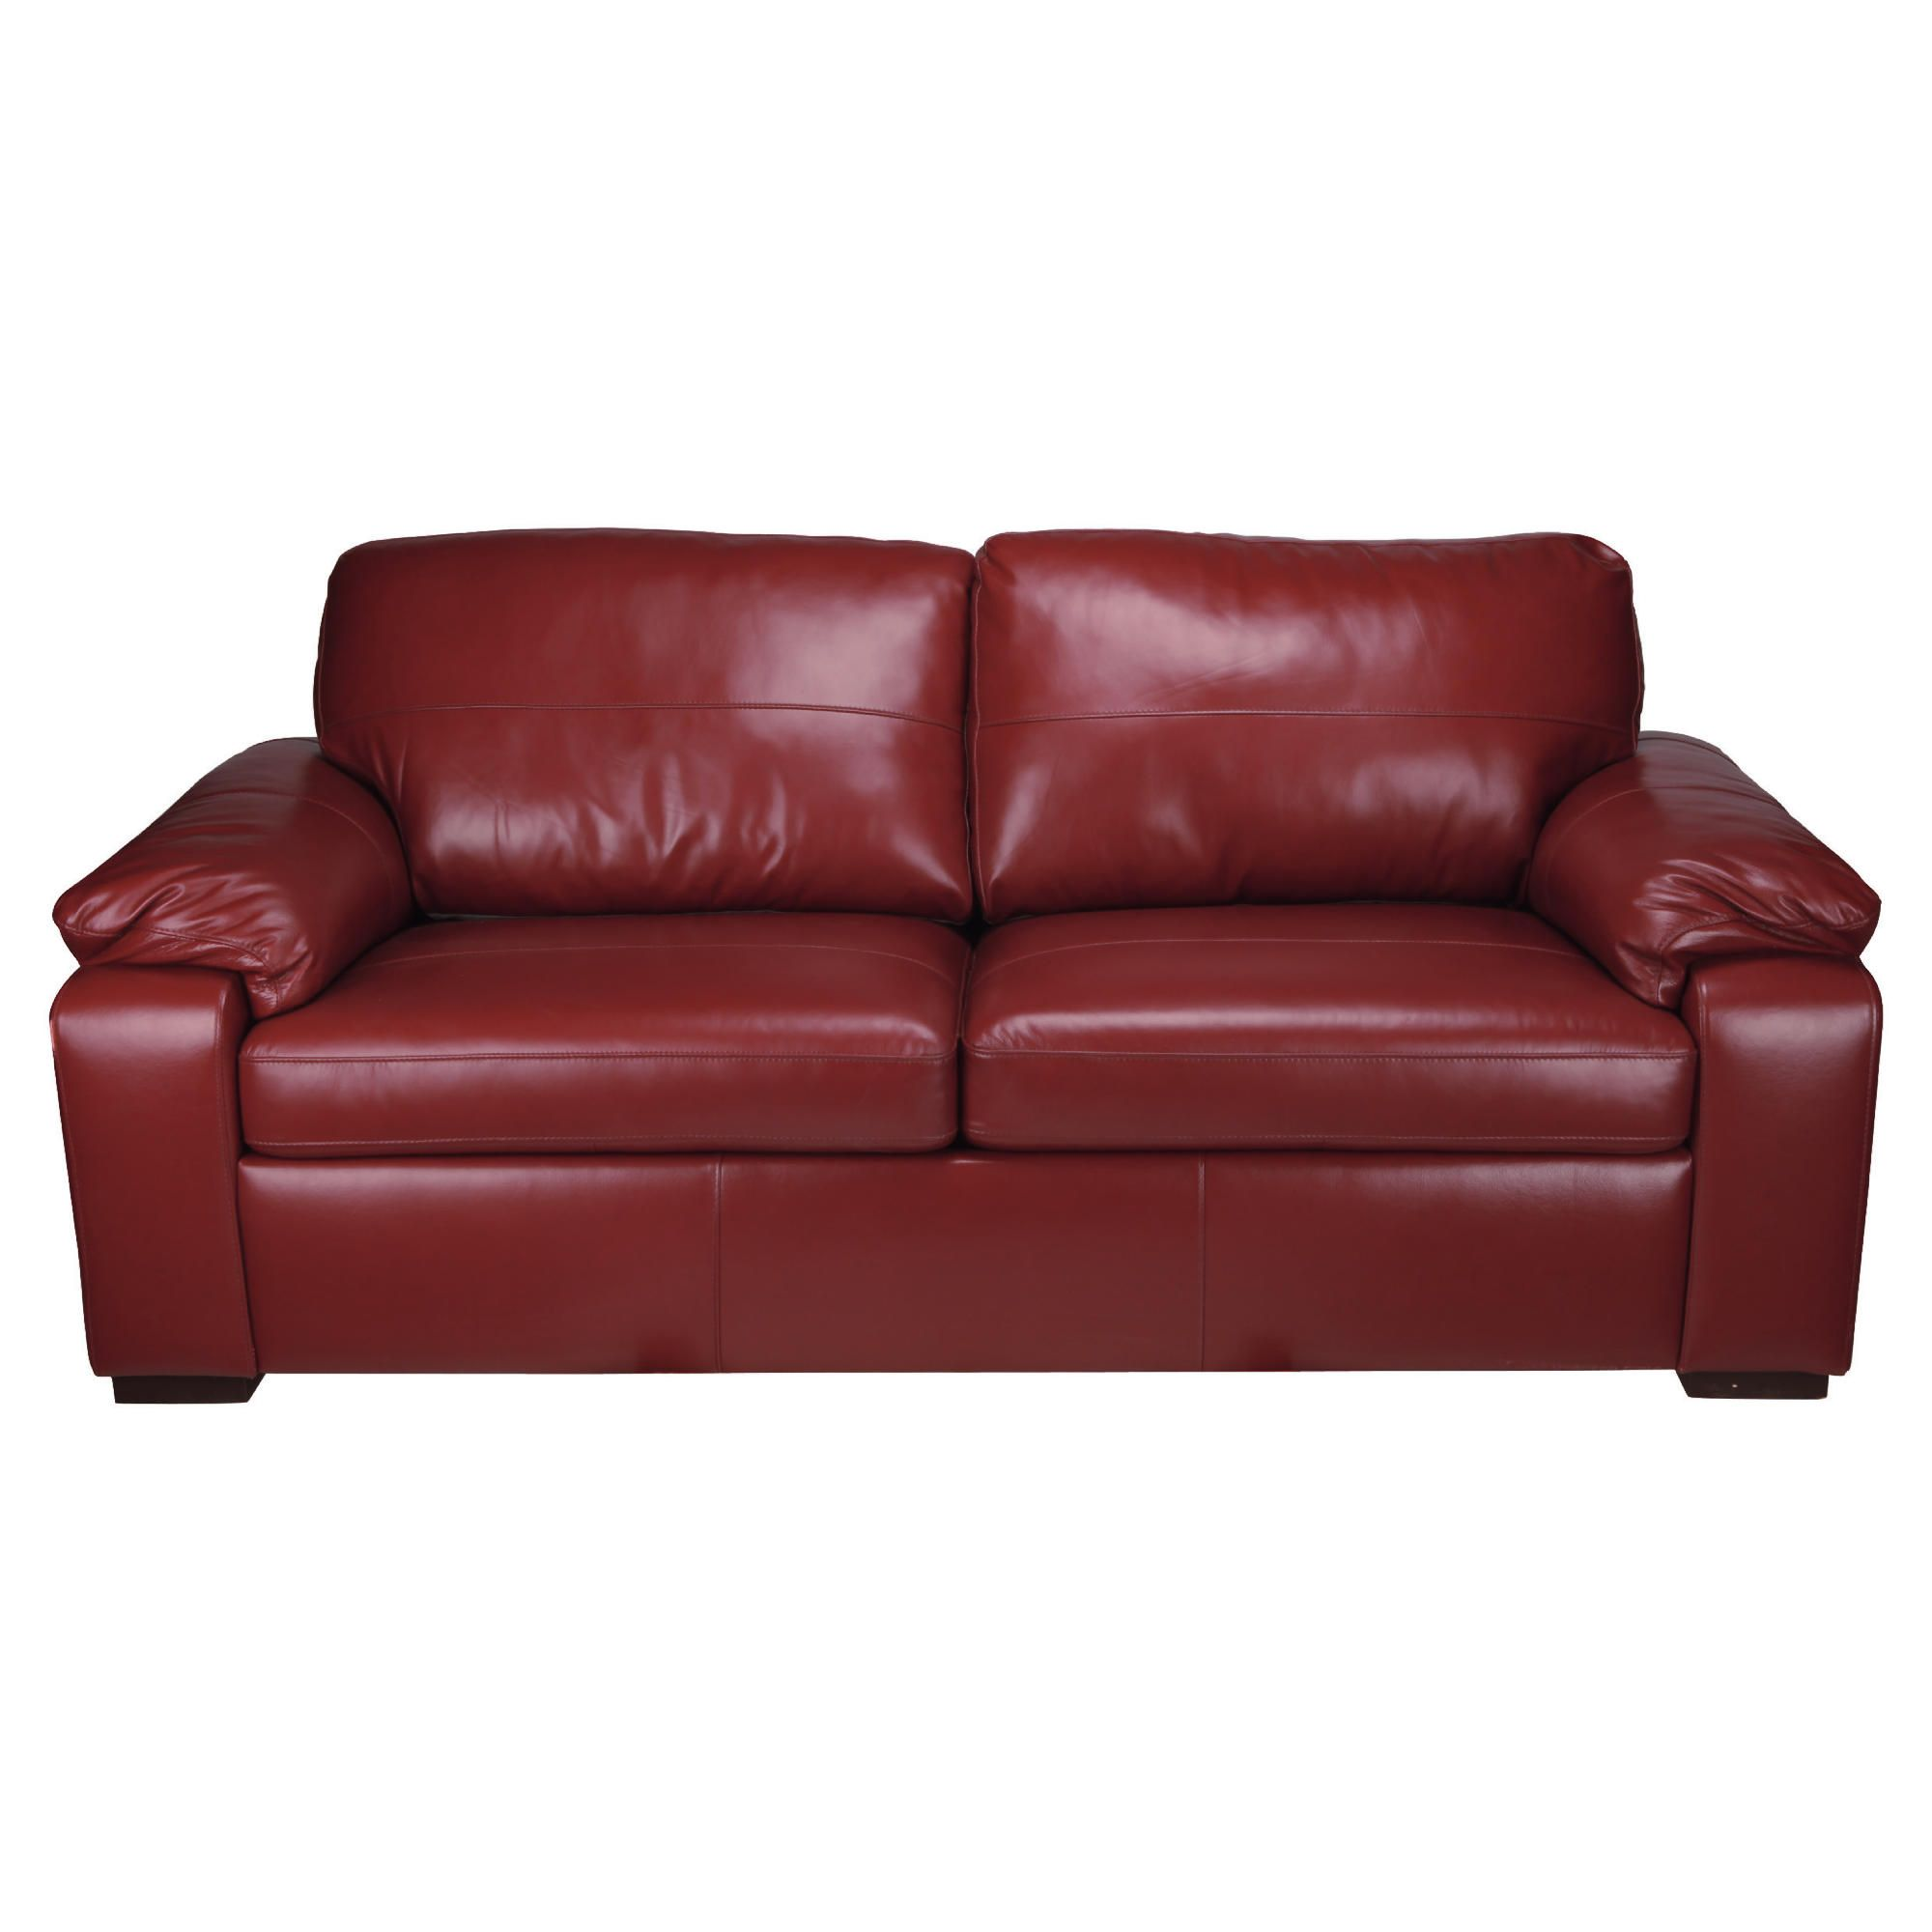 Home And Garden Furniture Ashmore Leather Sofa Bed Red Special Offers